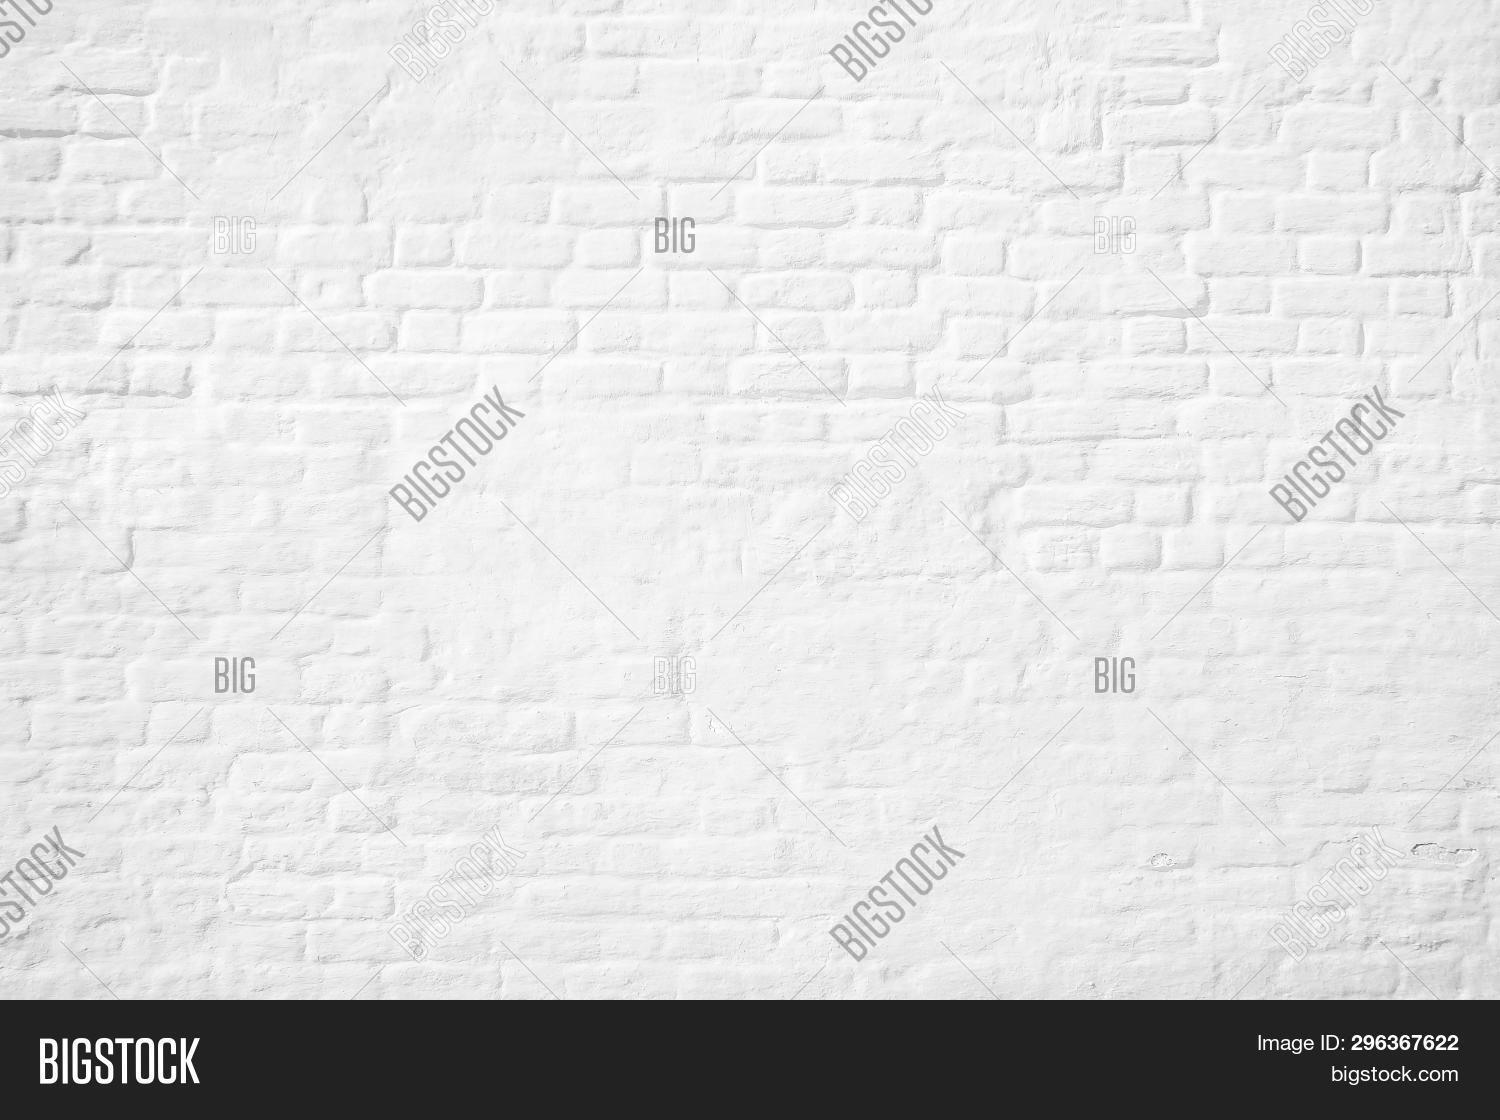 abstract,architecture,art,backdrop,background,block,brick,building,cement,clean,construction,design,detail,gray,grunge,home,interior,masonry,material,modern,old,paint,pattern,retro,room,solid,space,structure,surface,texture,vintage,wall,wallpaper,white